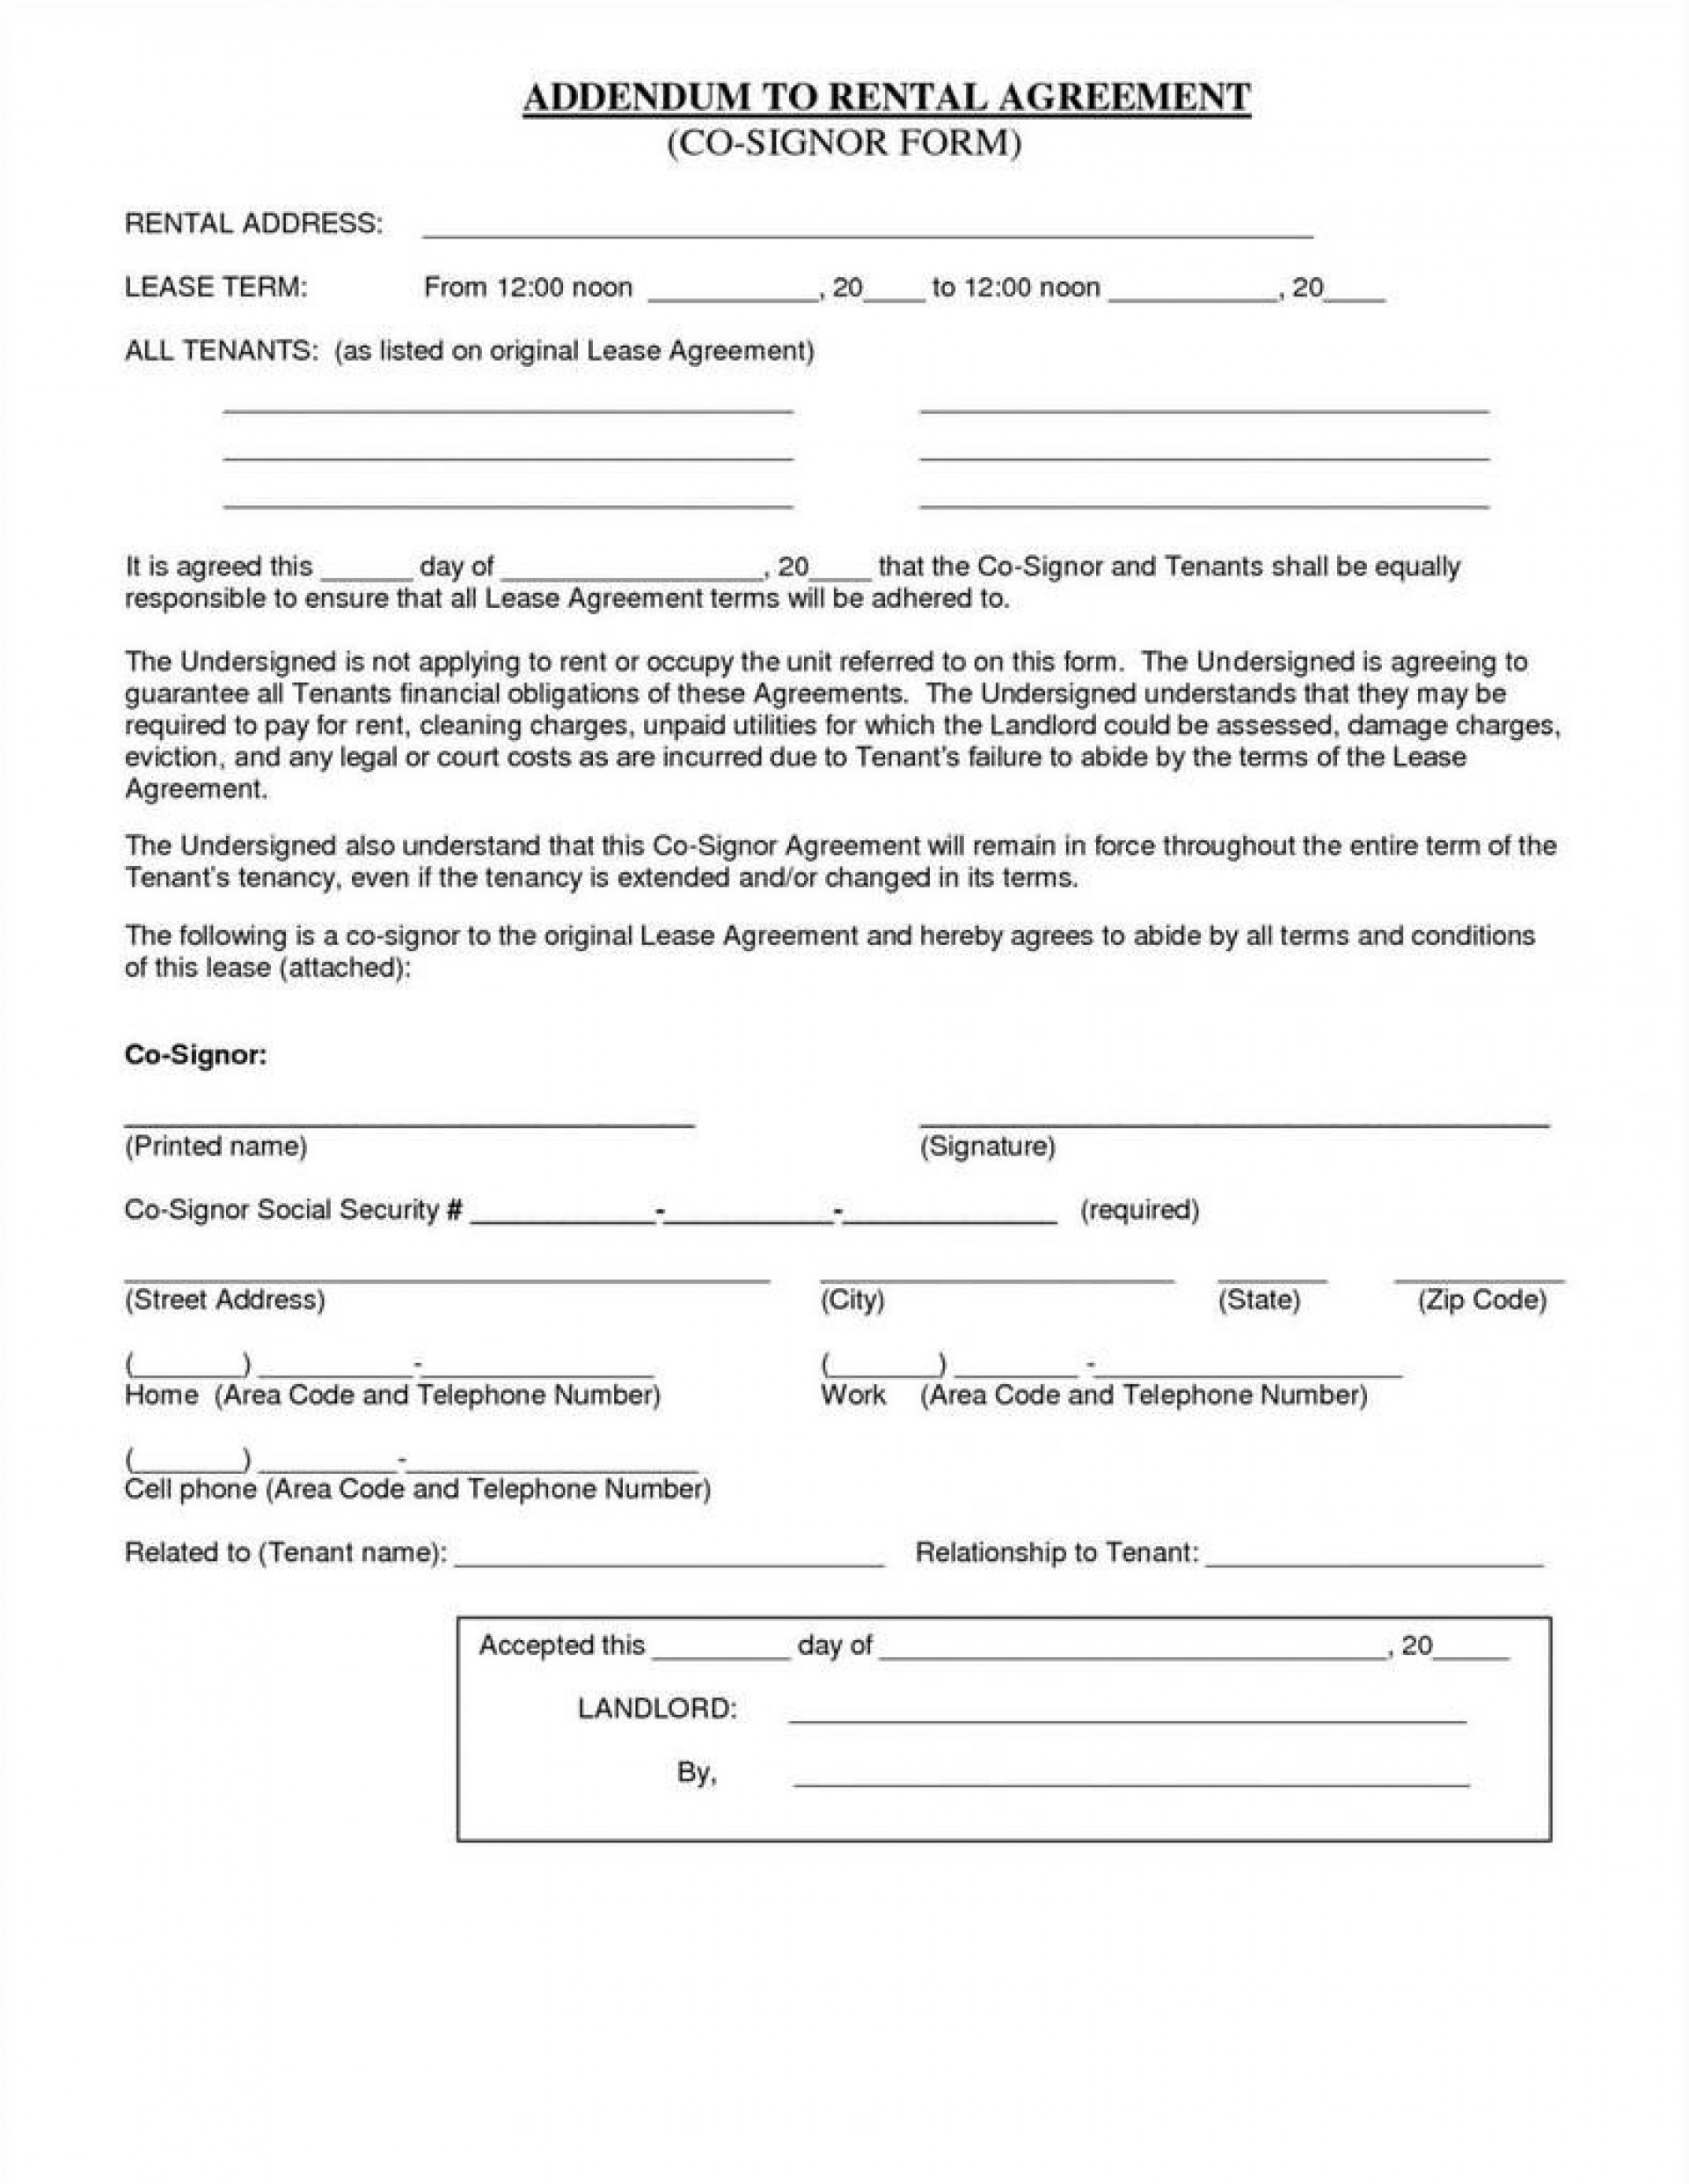 007 Unusual Free Sublease Agreement Template South Africa High Resolution  Simple Residential Lease Word Download1920